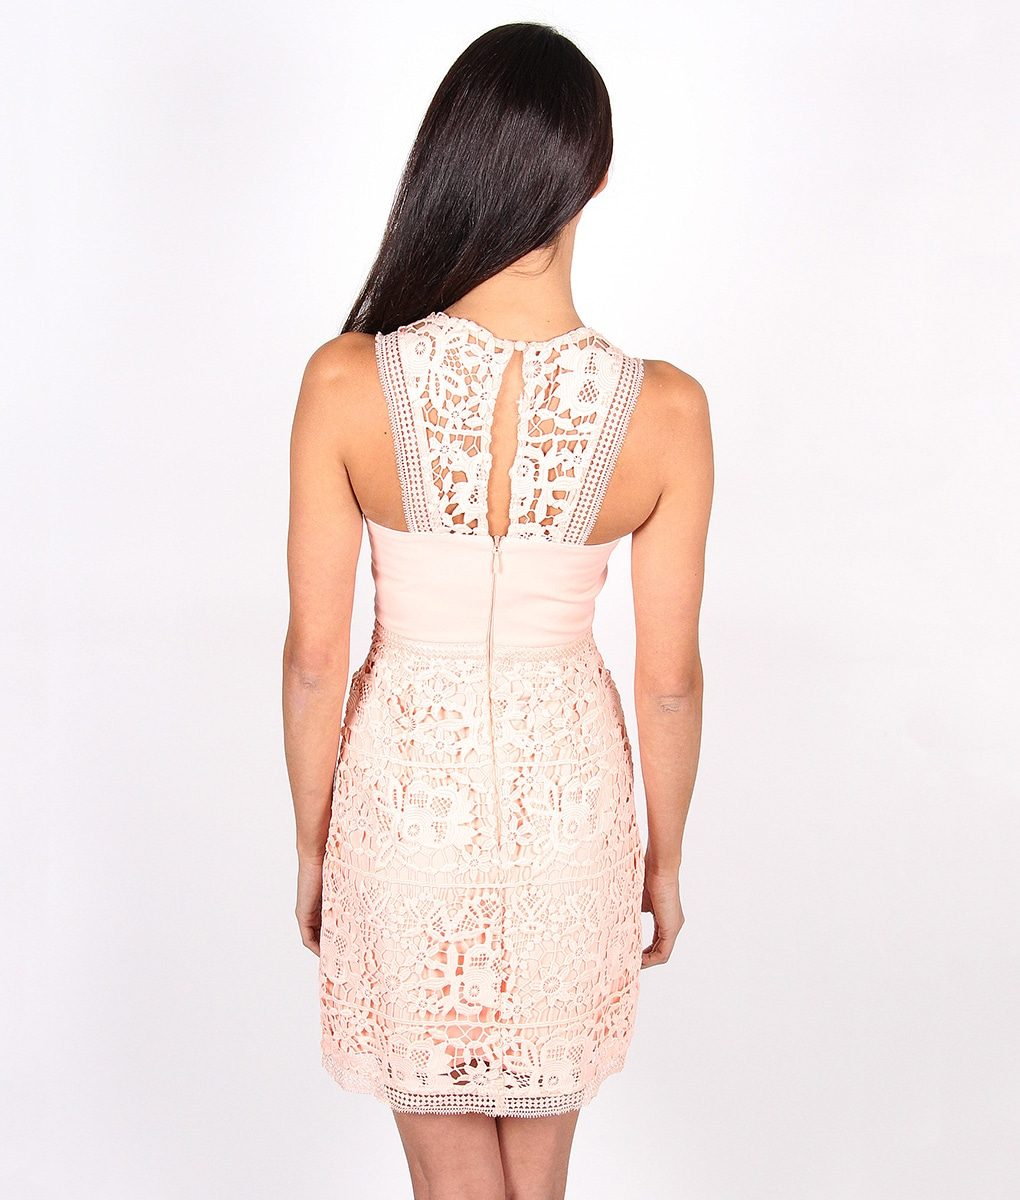 Alila-Pale-Peach-Lace-Dress-for-wedding-by-Lumier-by-Bariano-1